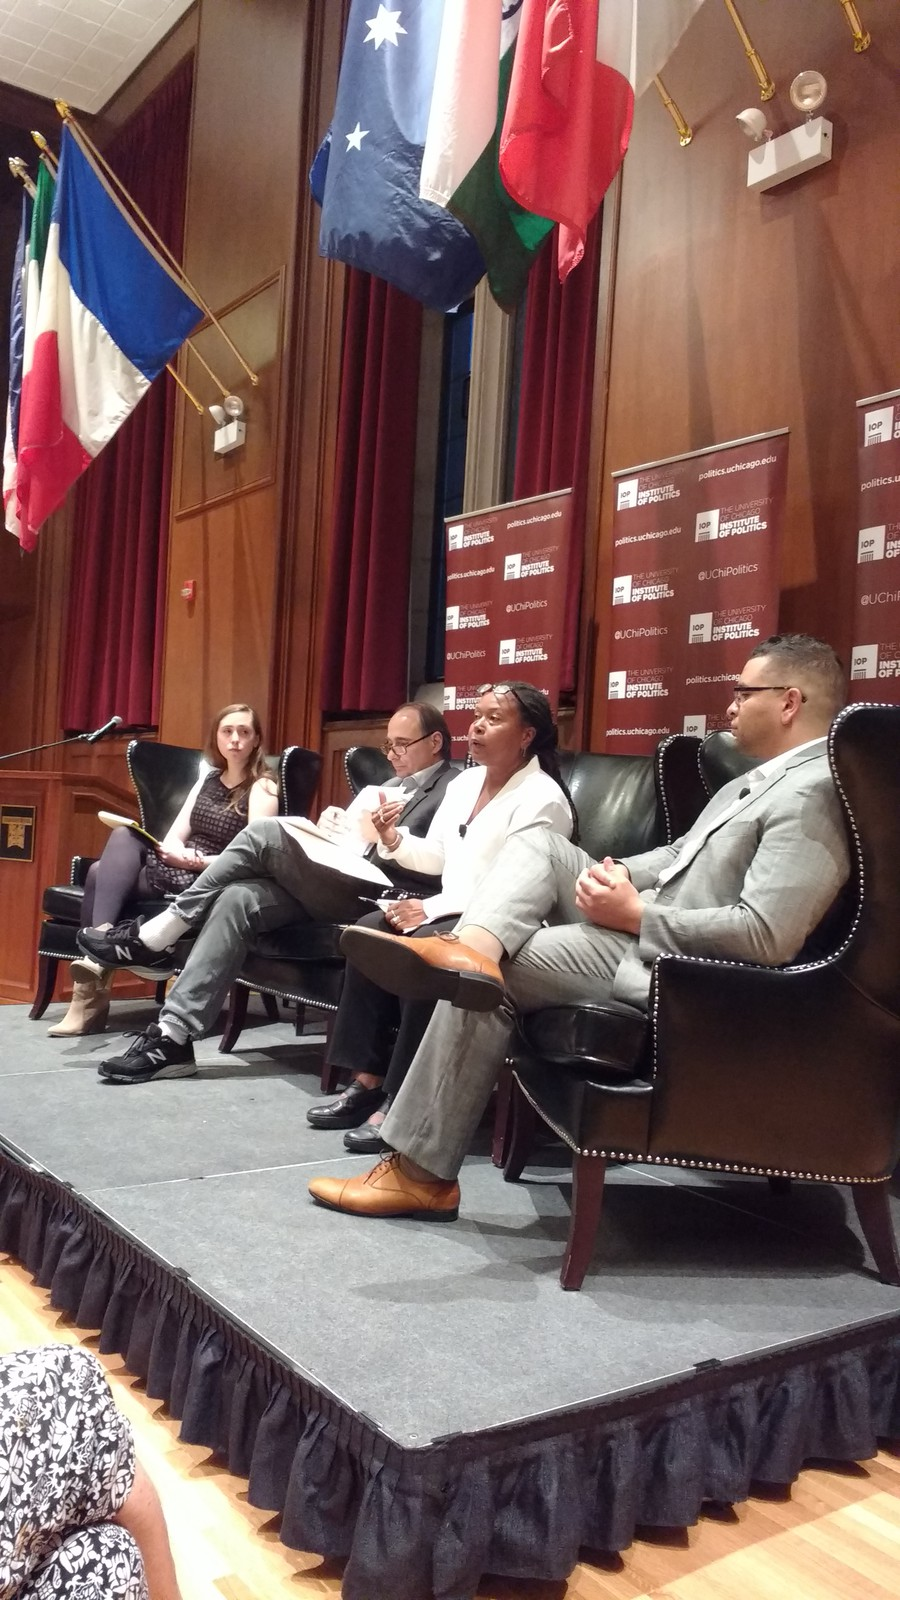 A panel was convened Monday to discuss the the Genforward survey and its findings.